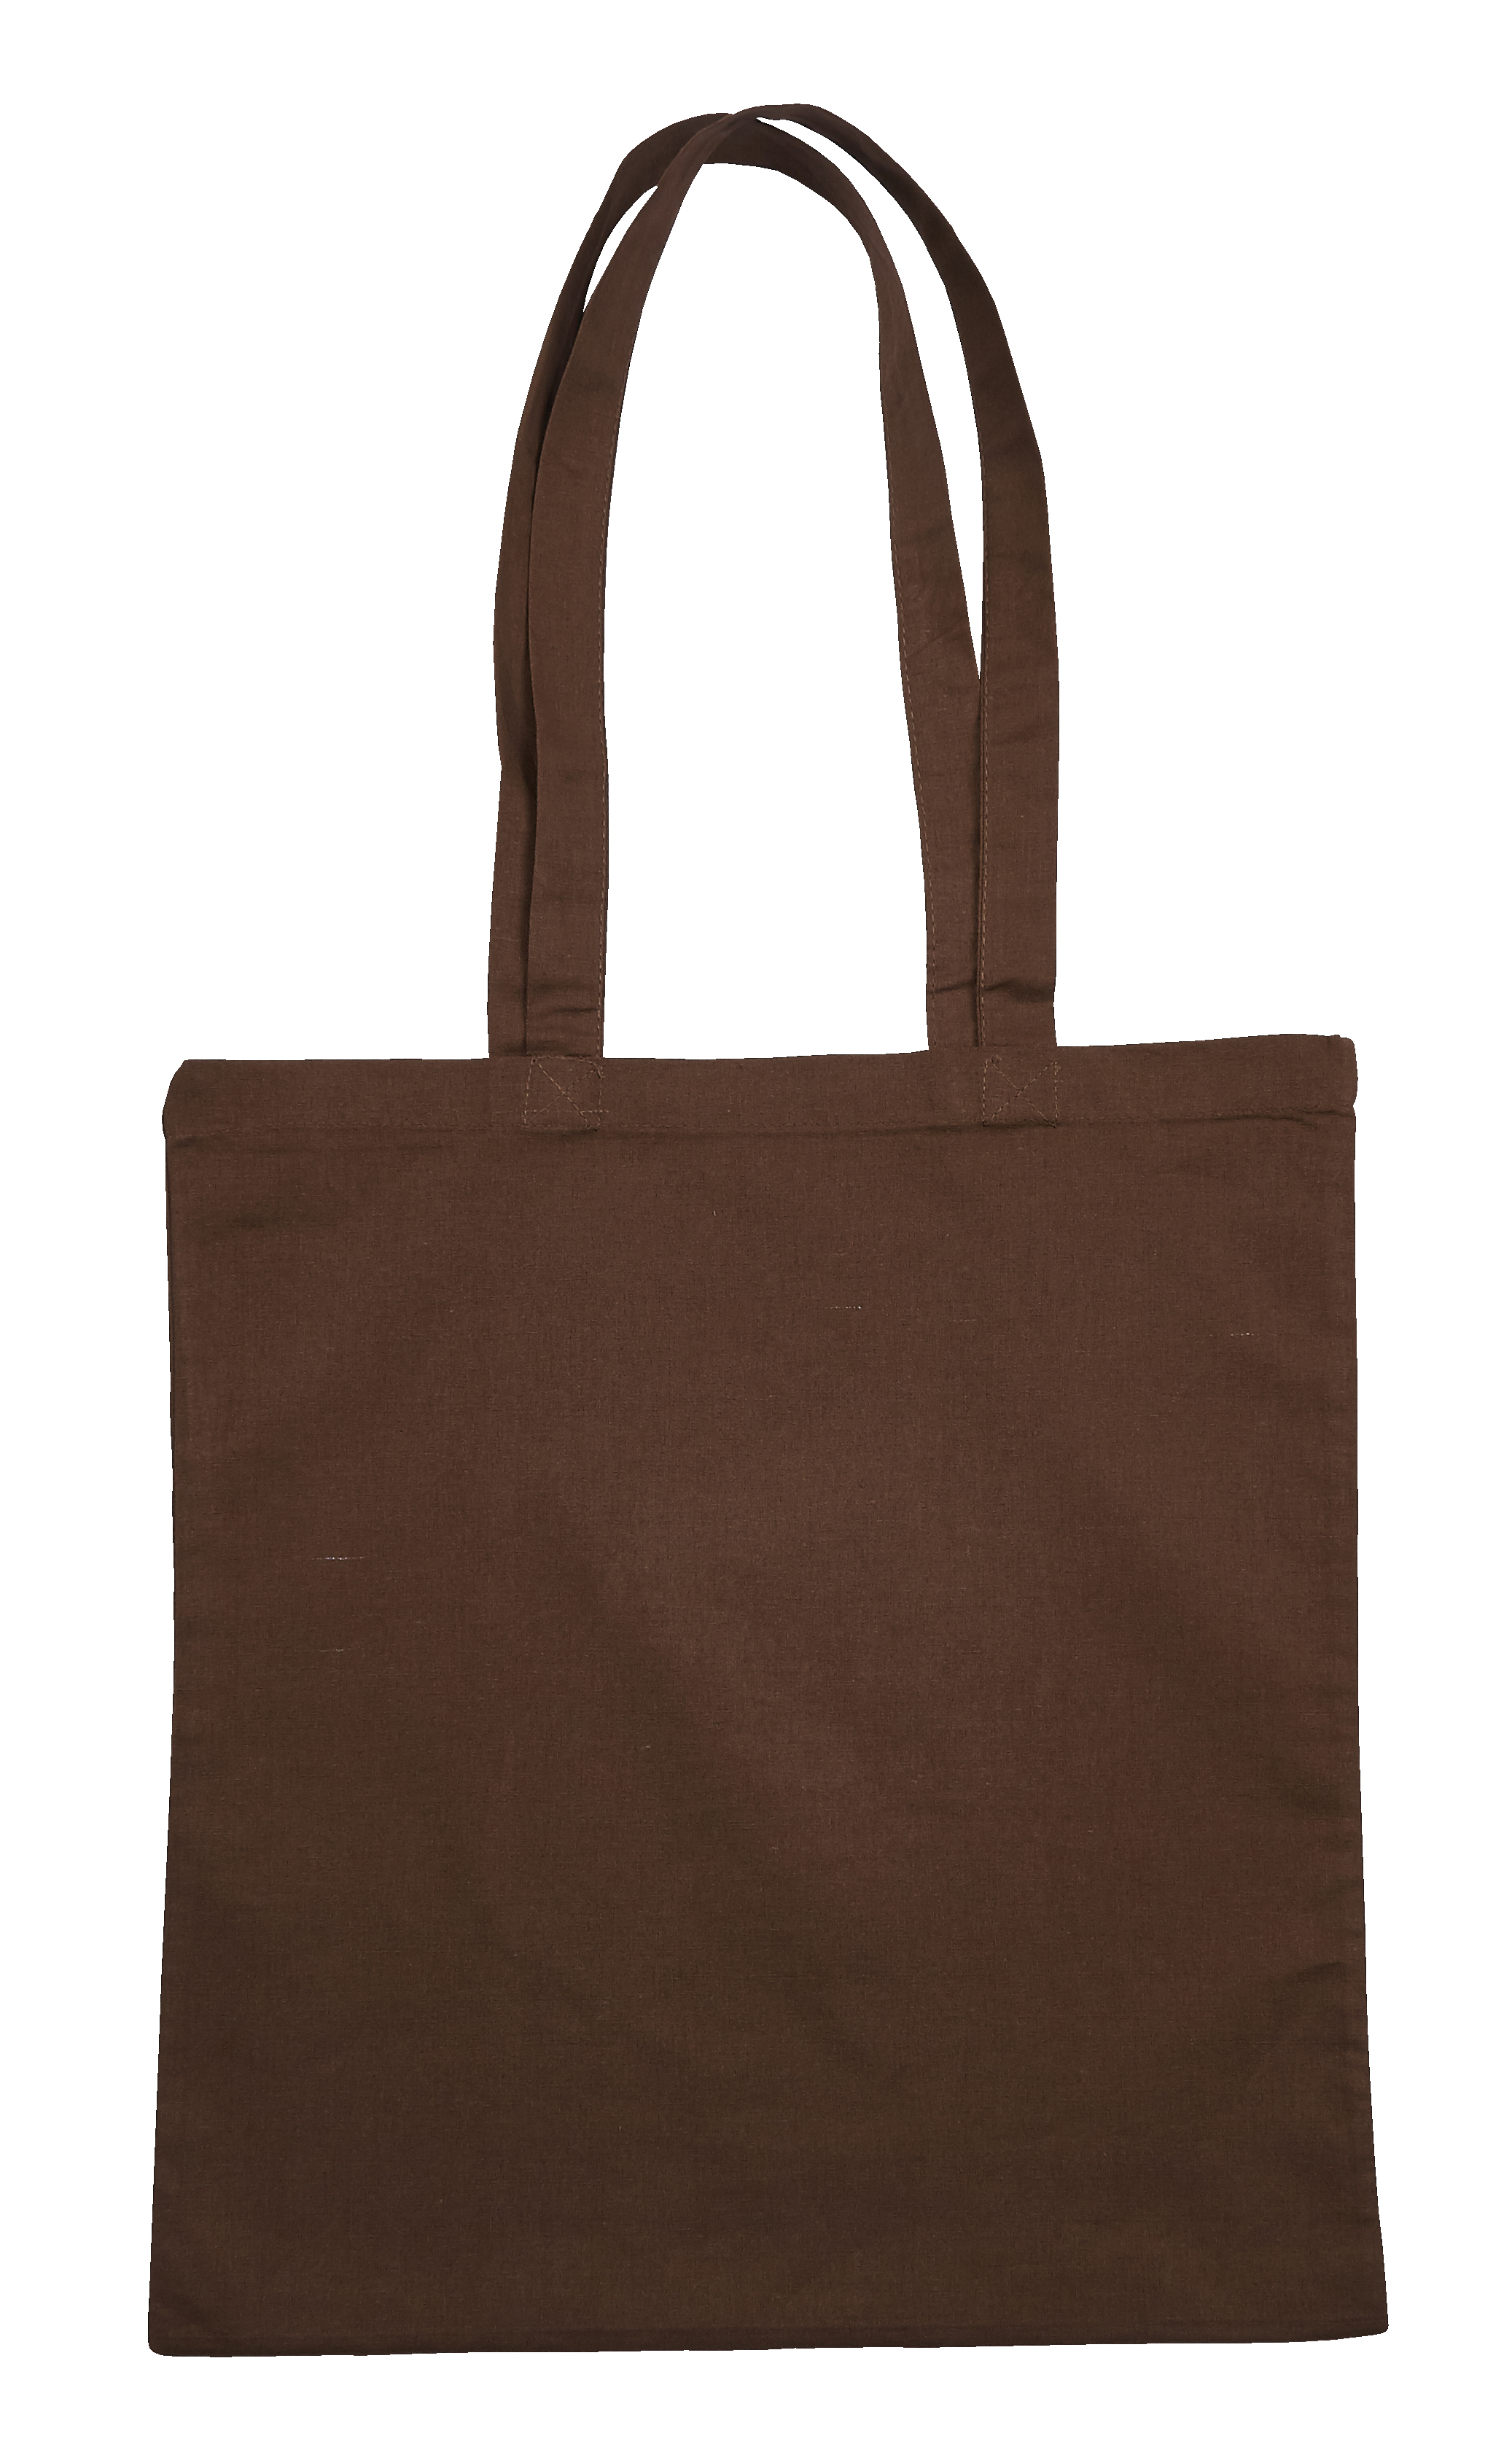 Brown Jute Canvas Cotton Shopper Bag